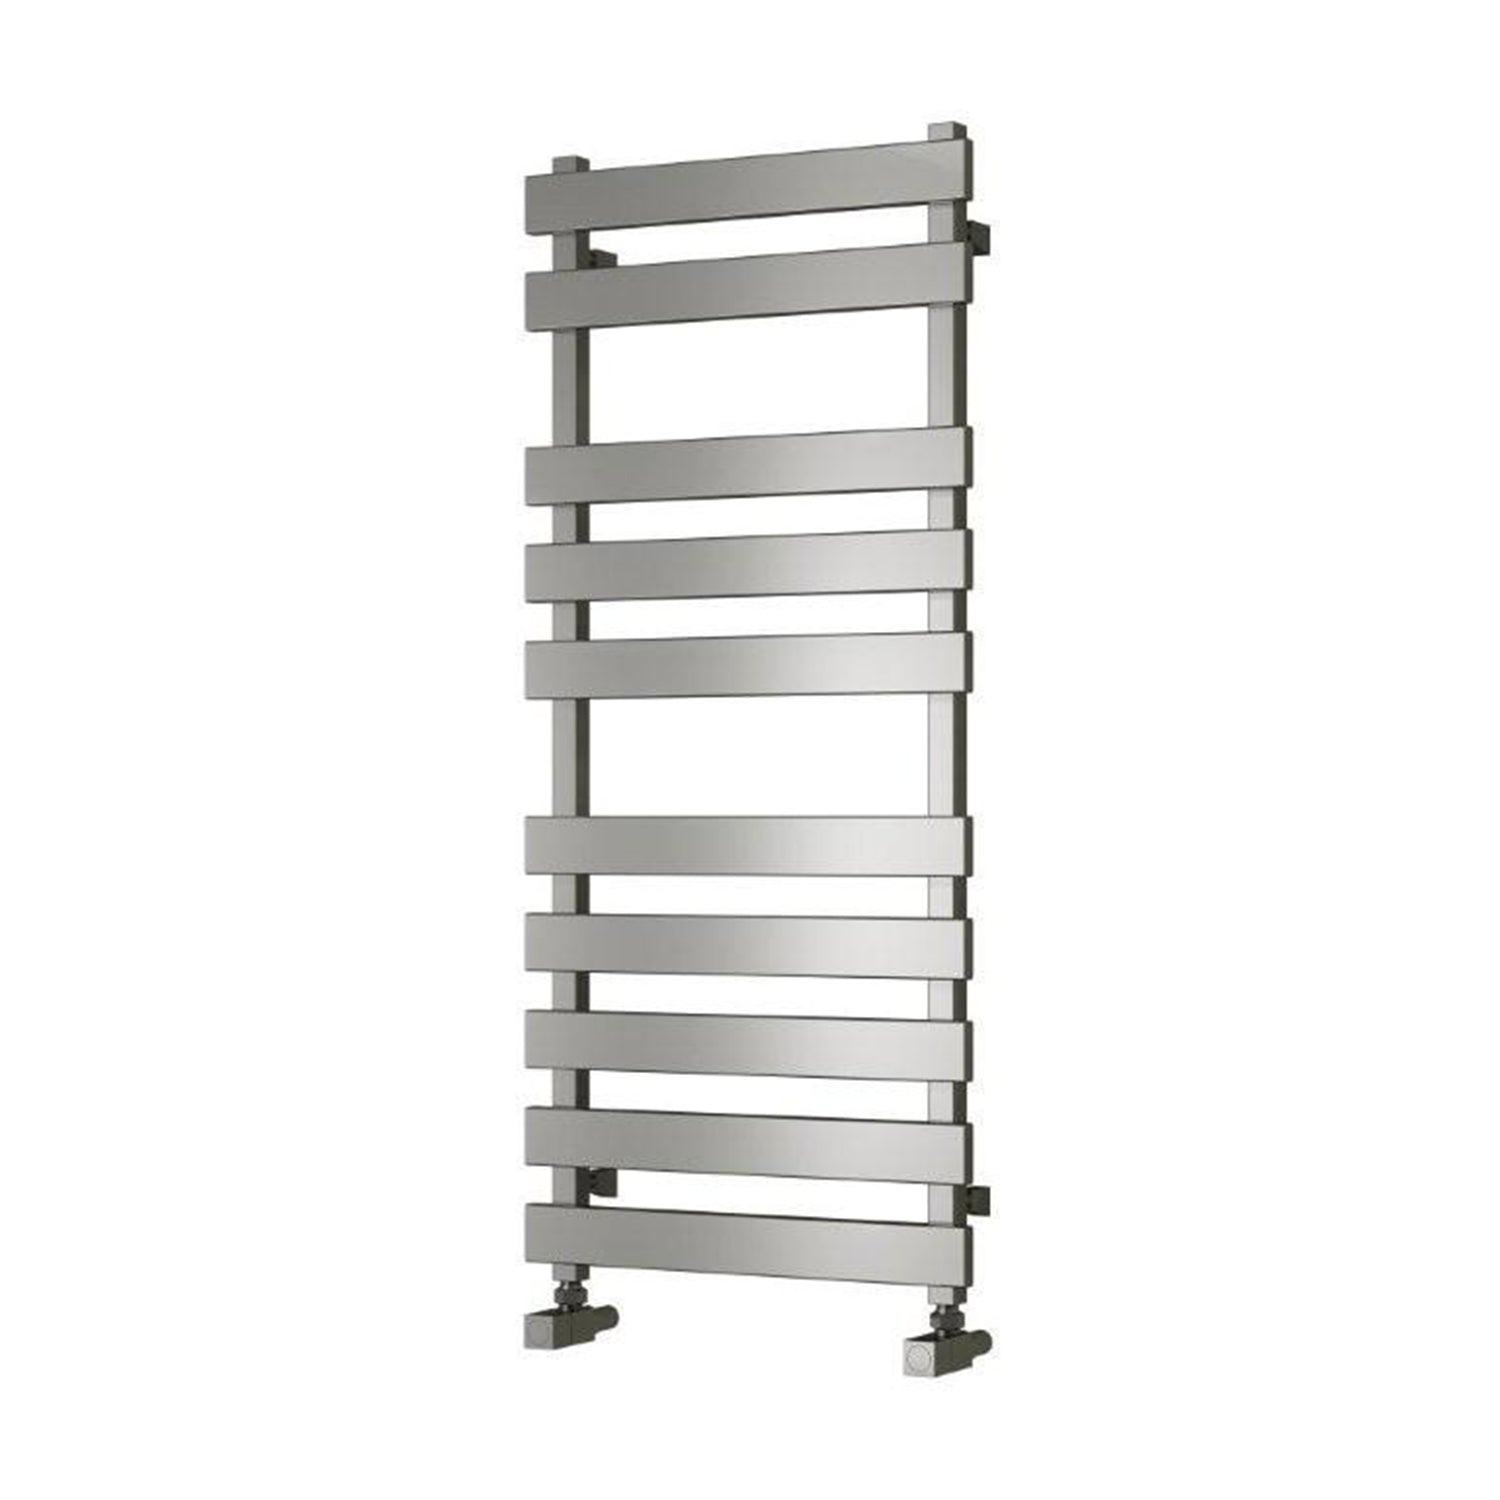 Reina Kreon Designer Radiators